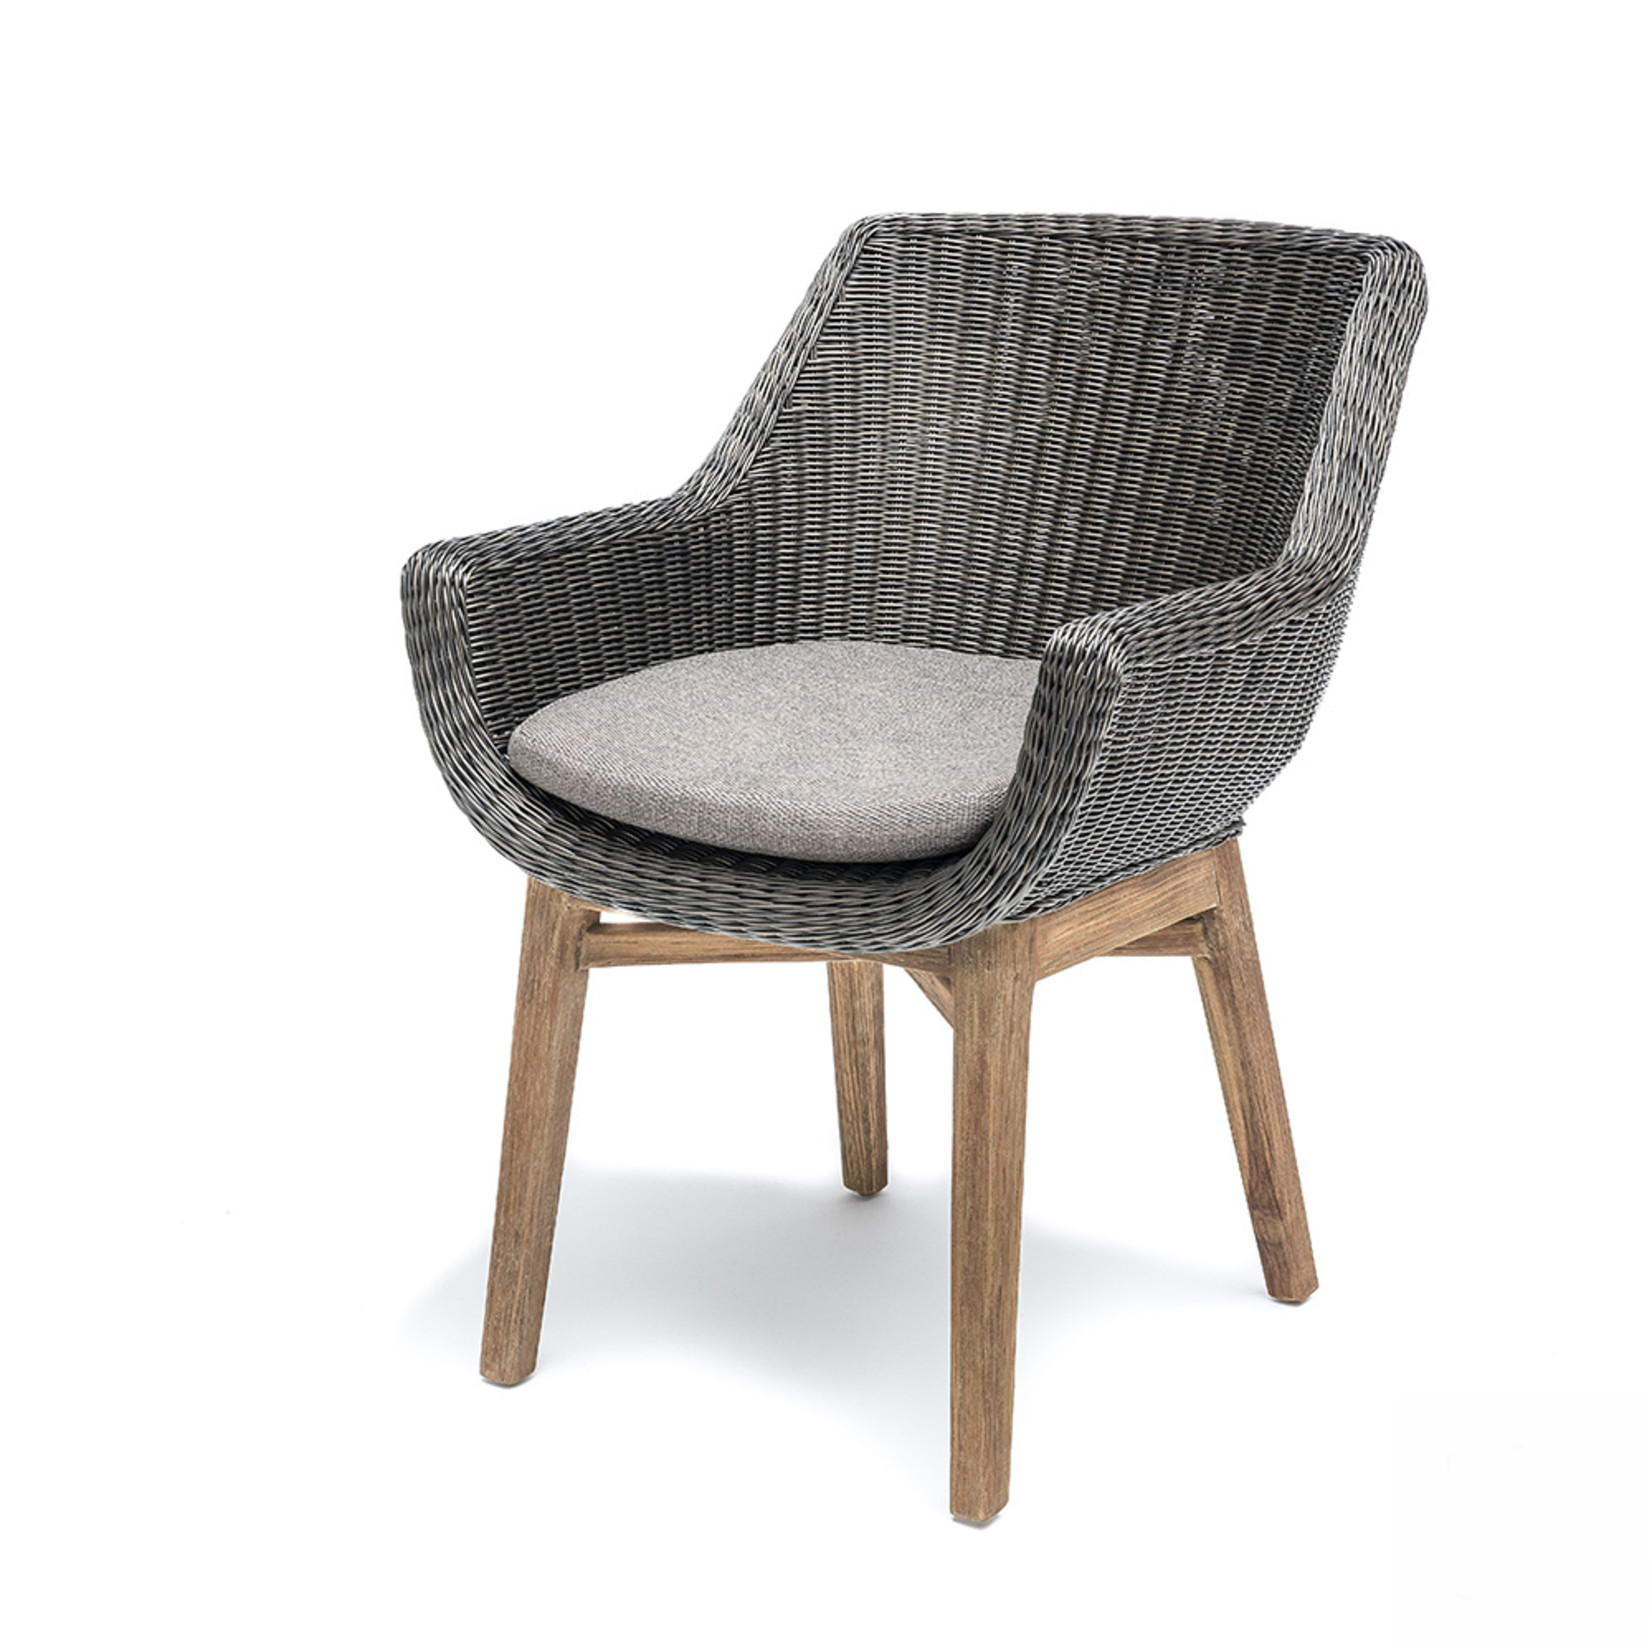 Gommaire Armchair Jacky | Teak Natural Grey / PE Wicker Charcoal